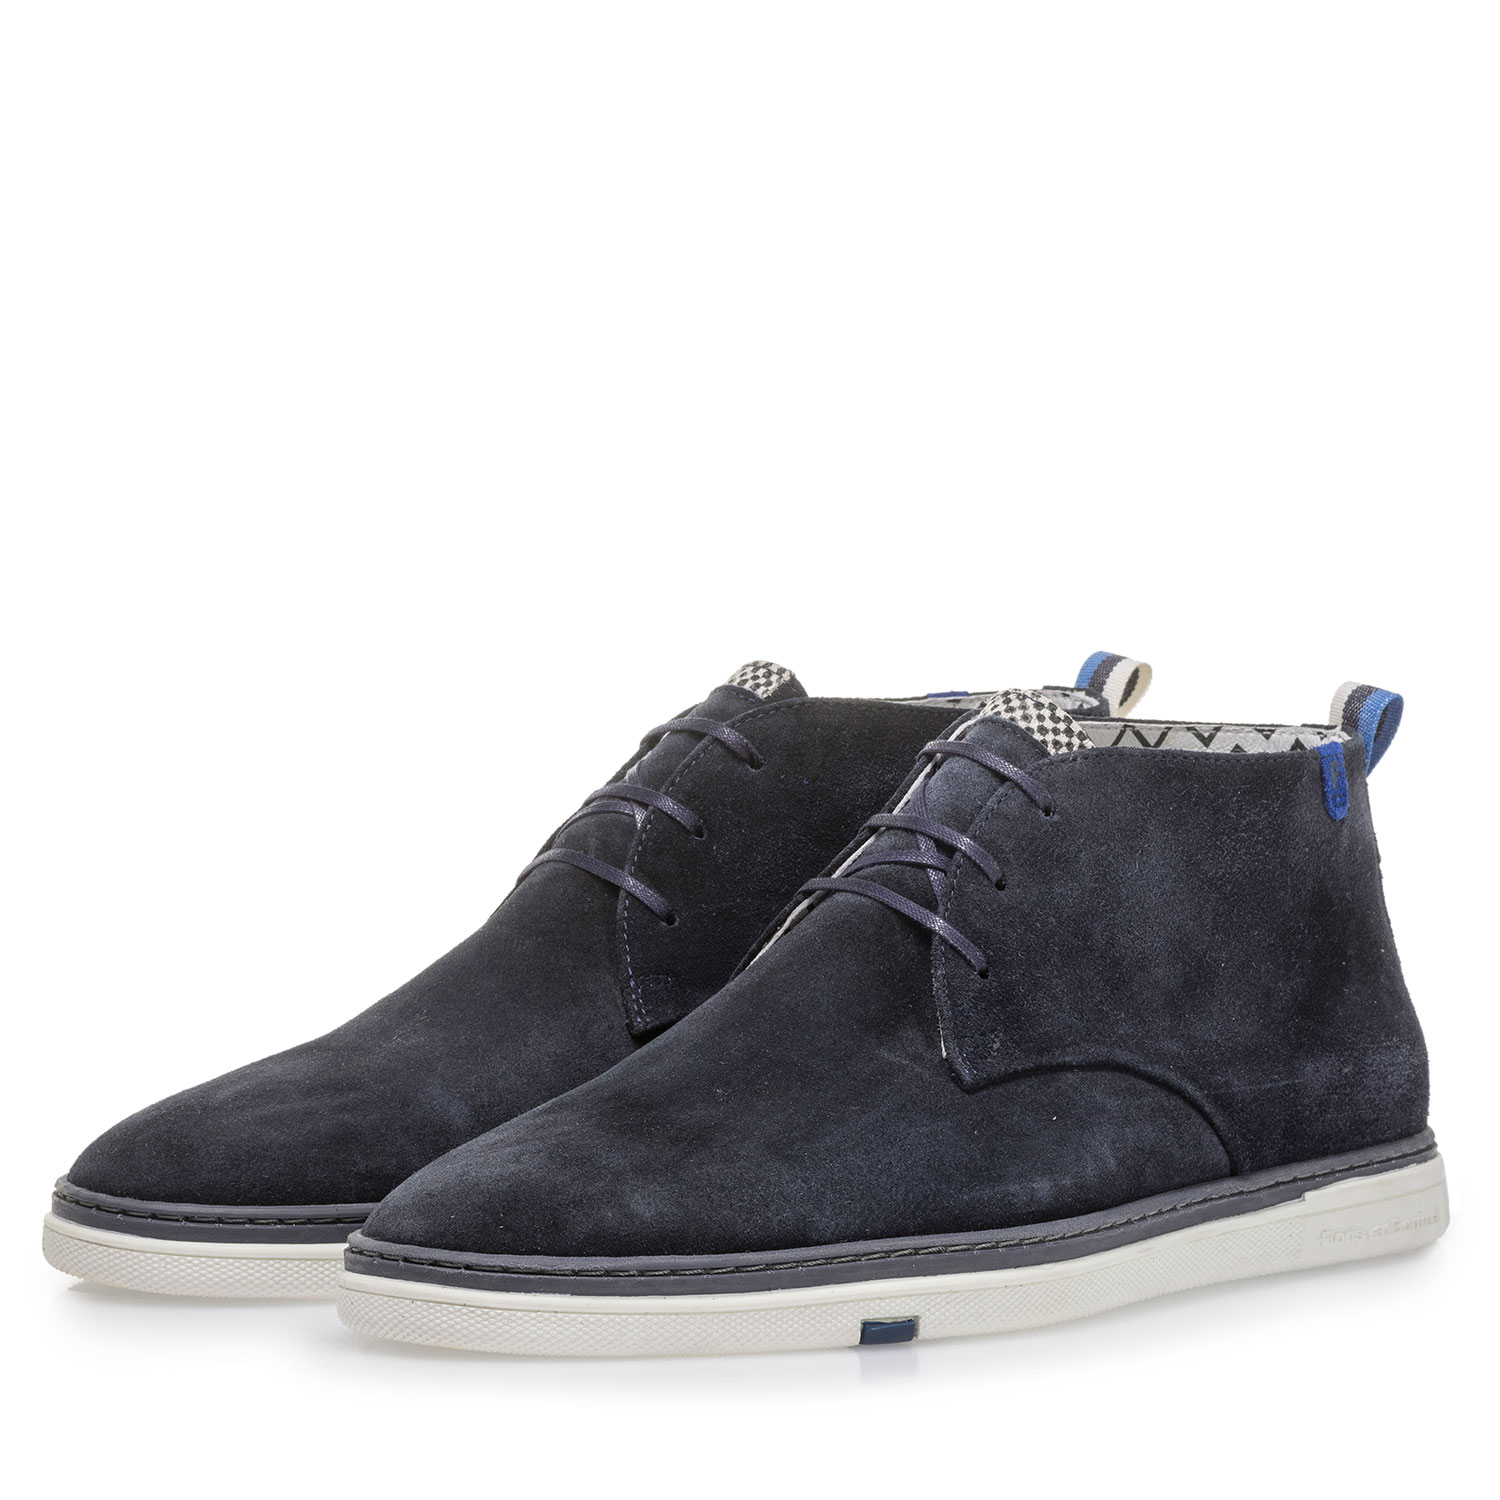 10502/06 - Dark blue suede leather lace boot